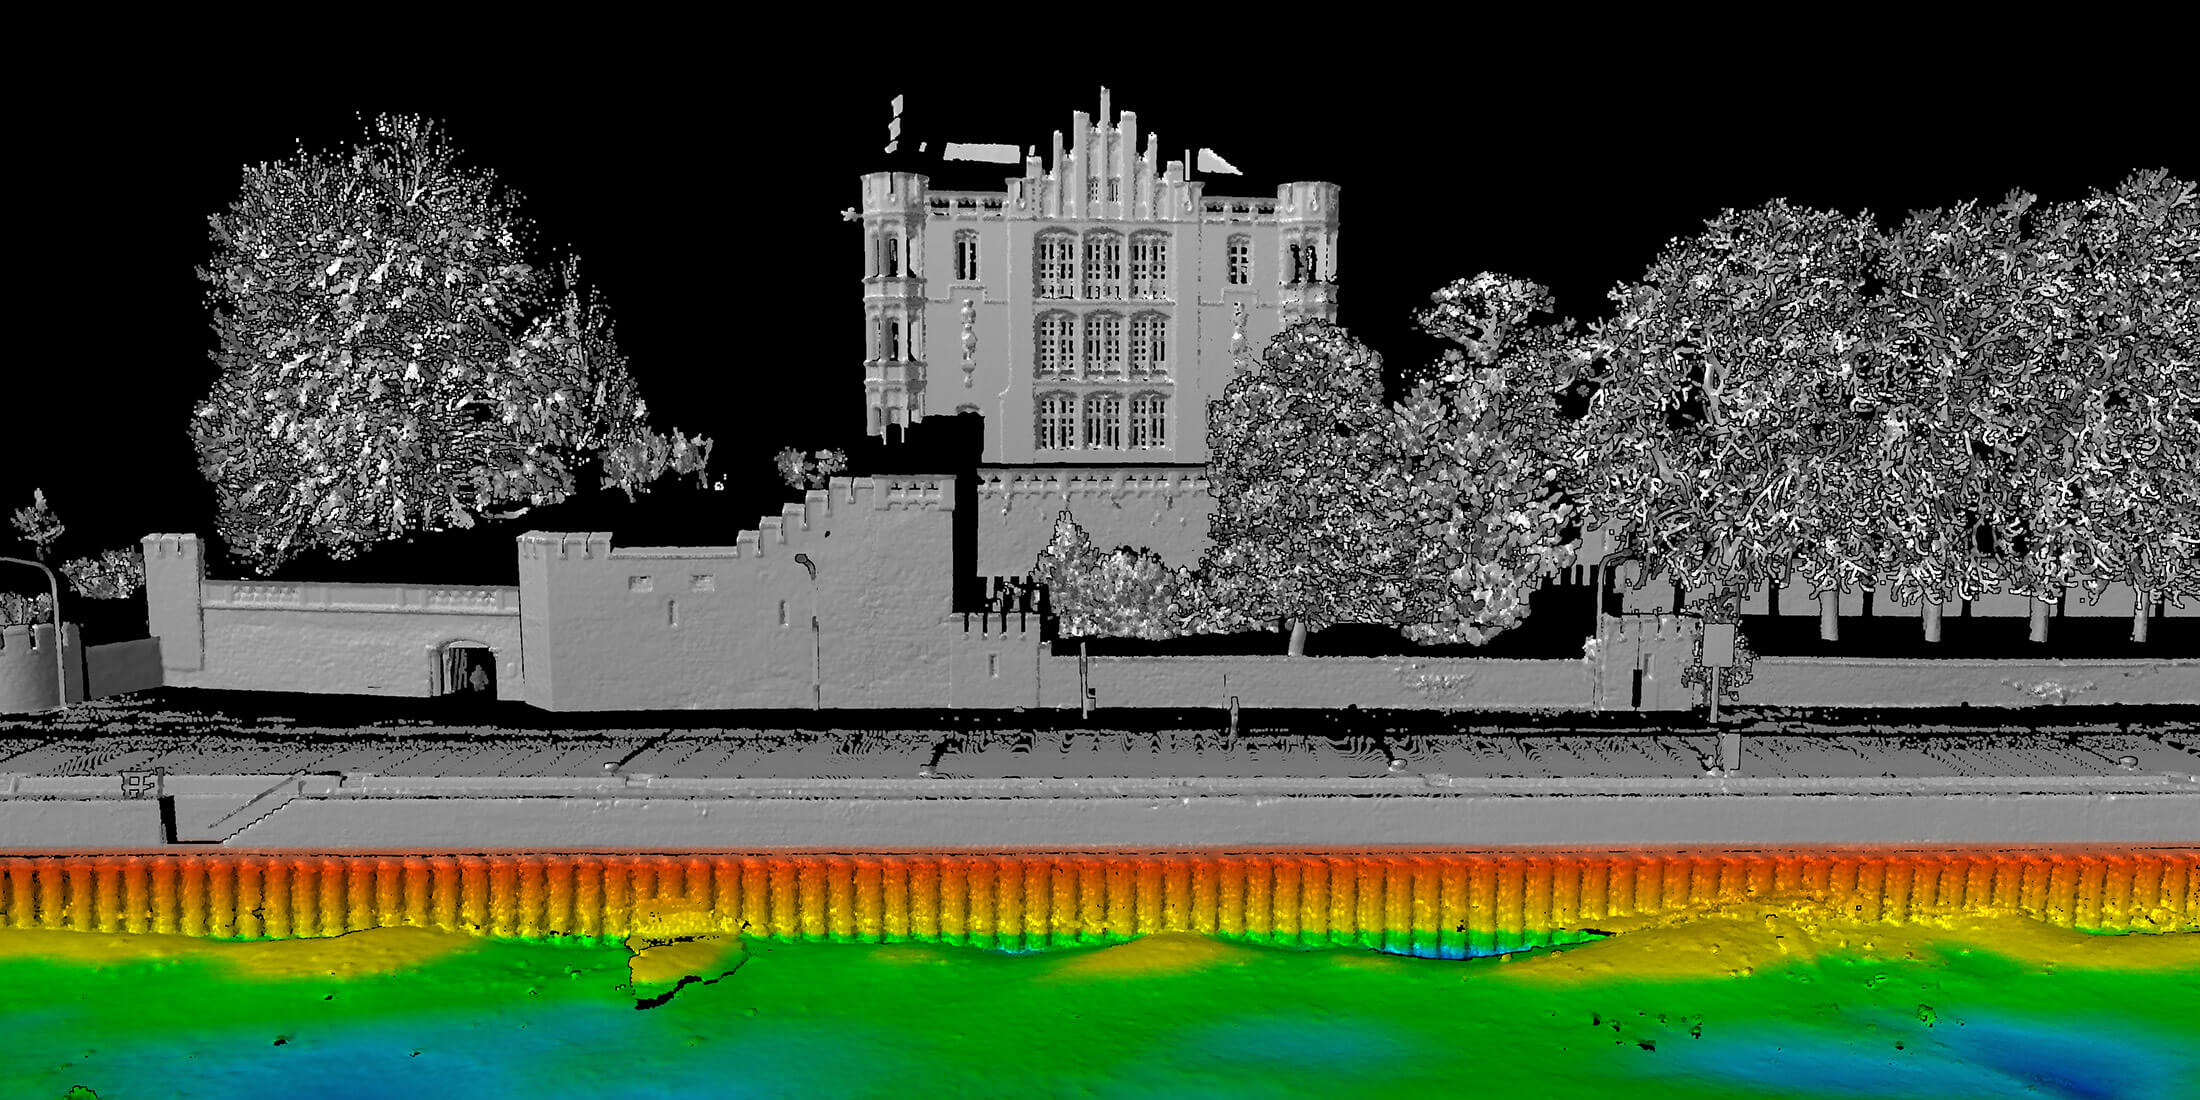 3D data from Bayernhafen Gruppe